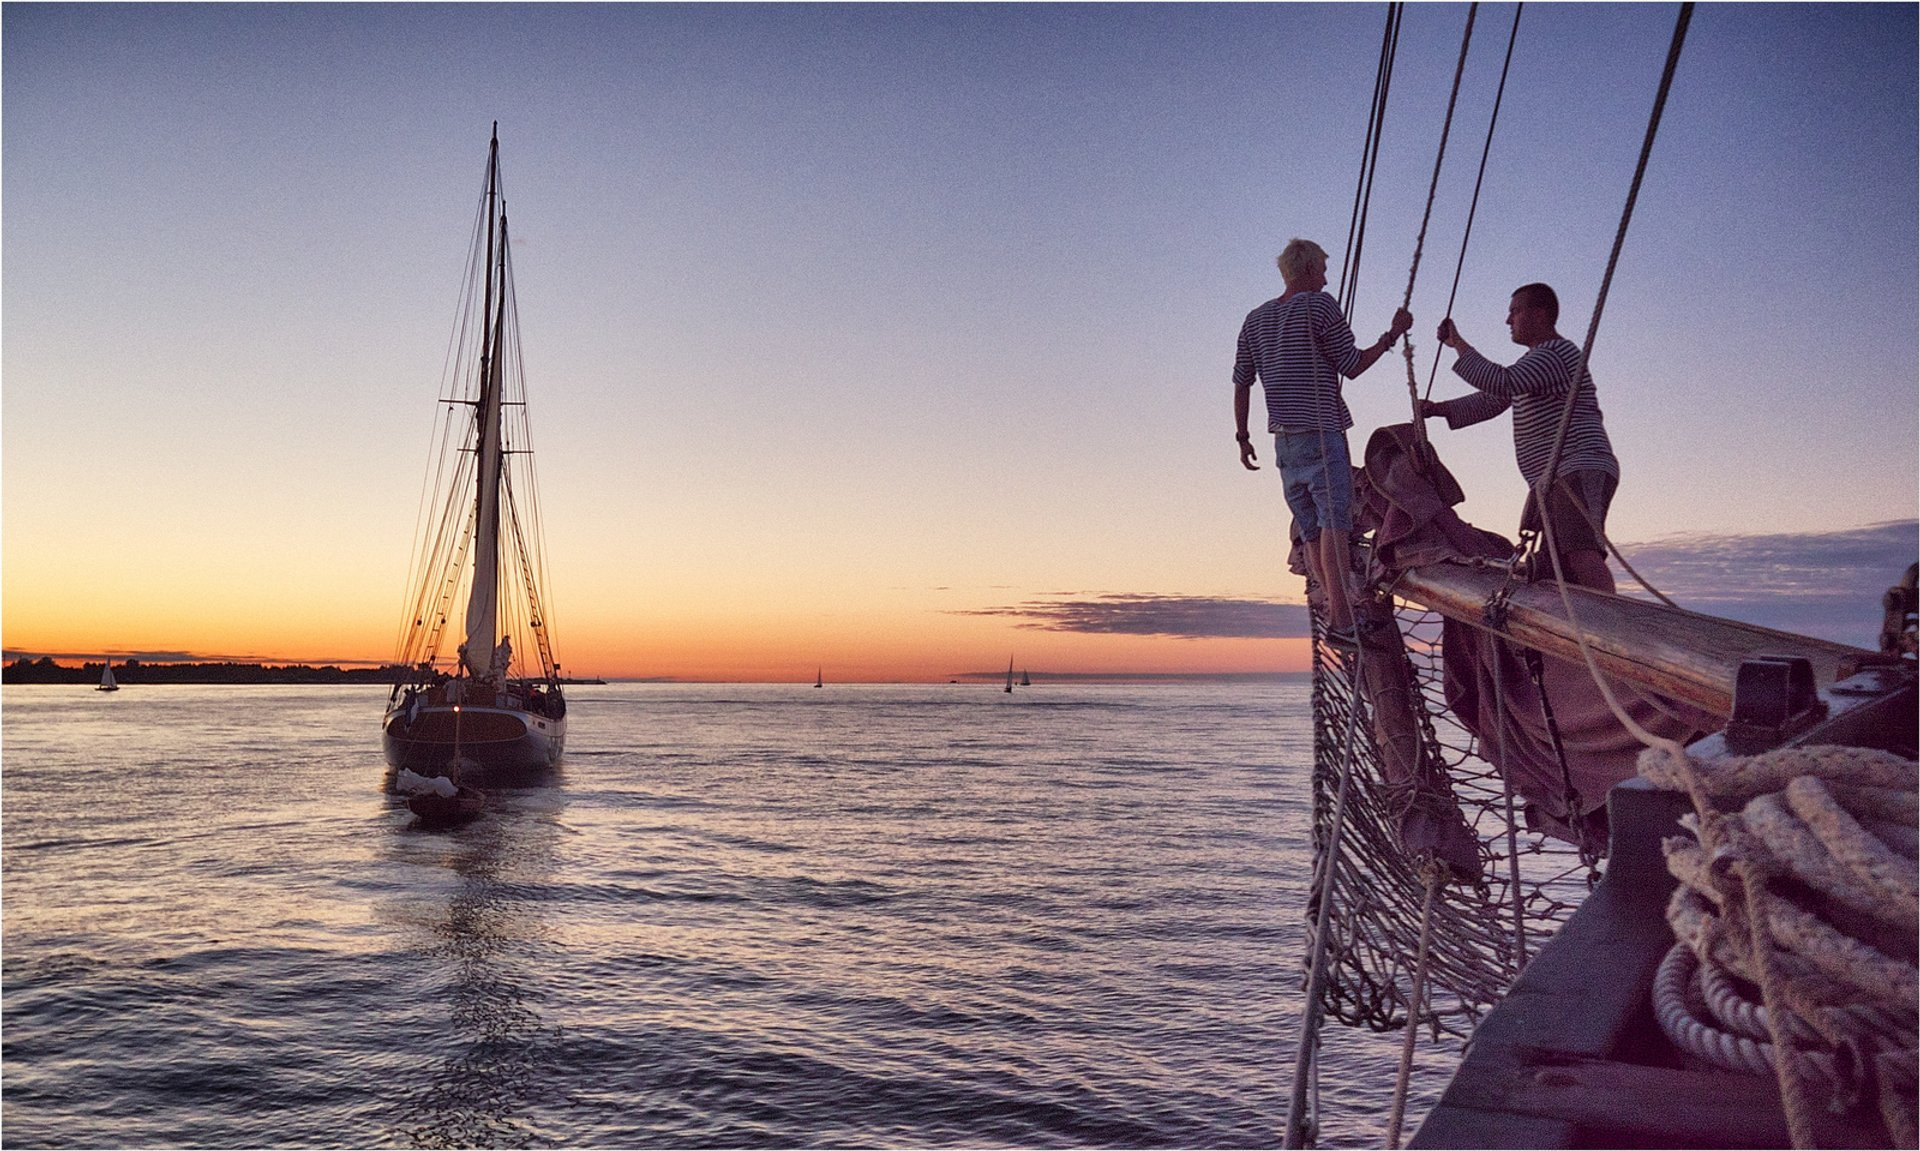 Sailing in Estonia 2019 - Best Time